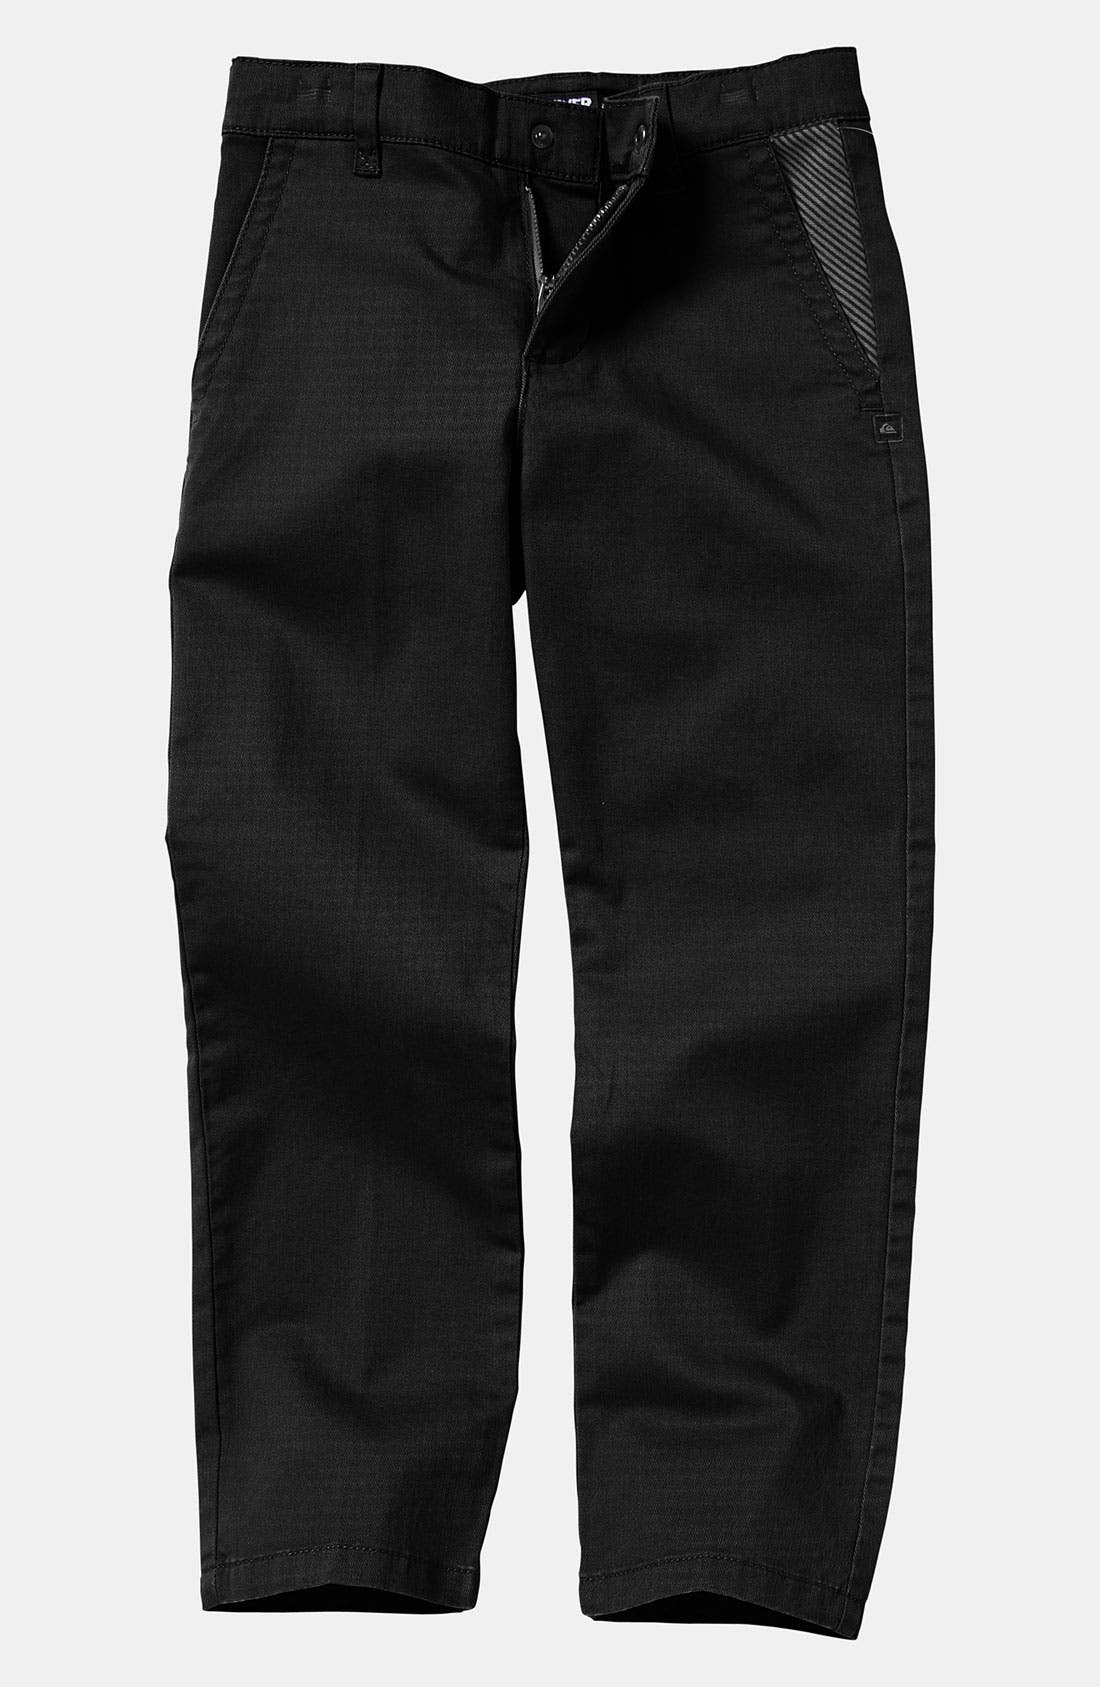 Alternate Image 1 Selected - Quiksilver 'Box Wire' Chino Pants (Toddler)